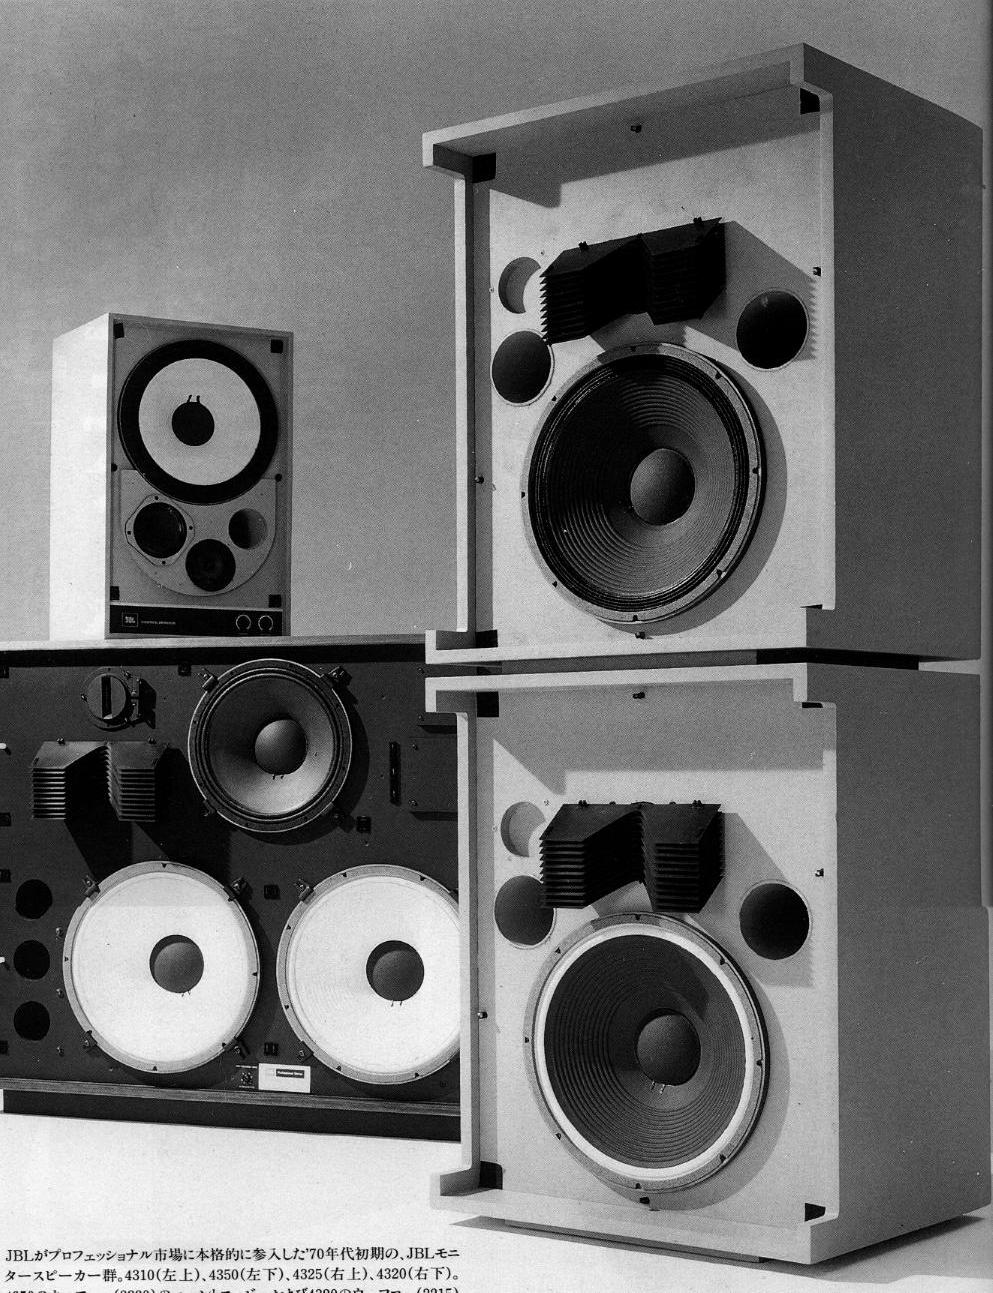 medium resolution of 1970 s jbl monitor lineup clockwise from top left 4310 4325 4320 and